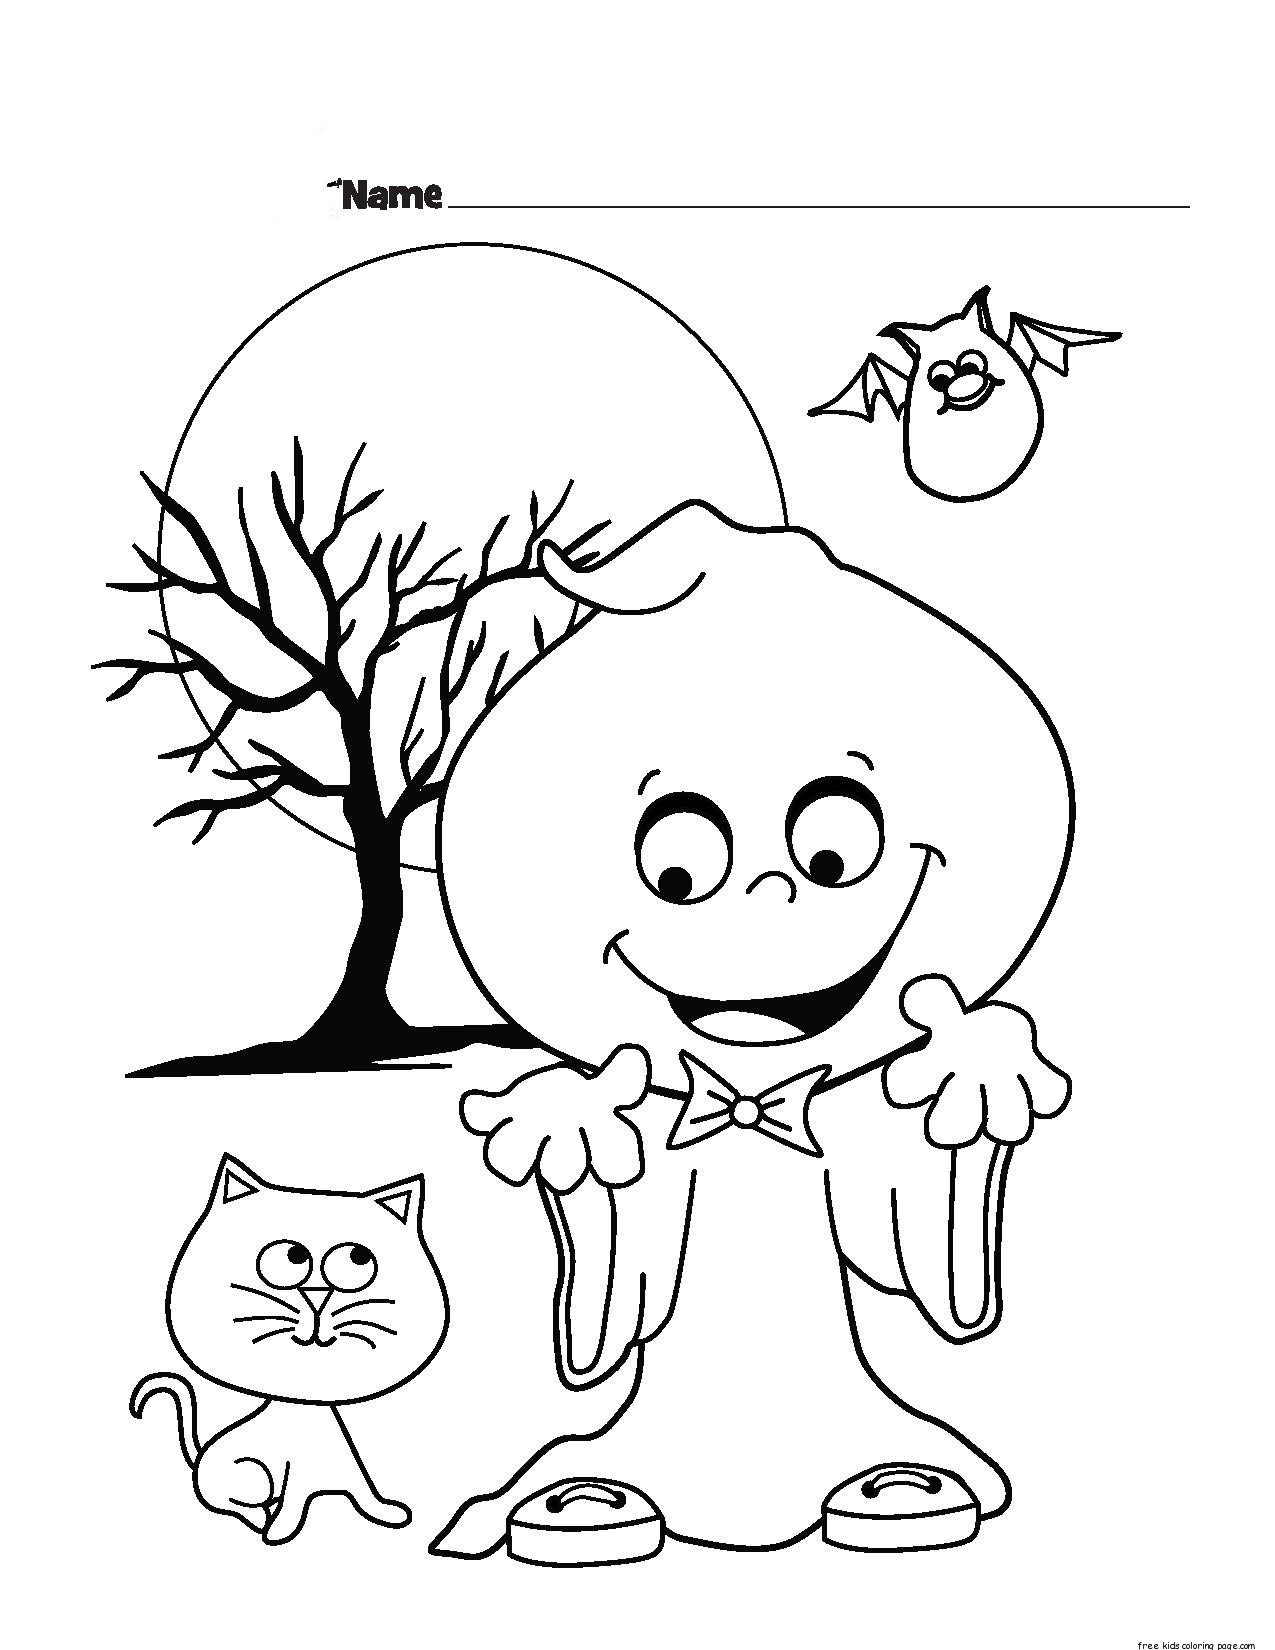 Halloween Ghost Printable Coloring Pages For Kidsfree Printable Coloring Pages For Kids